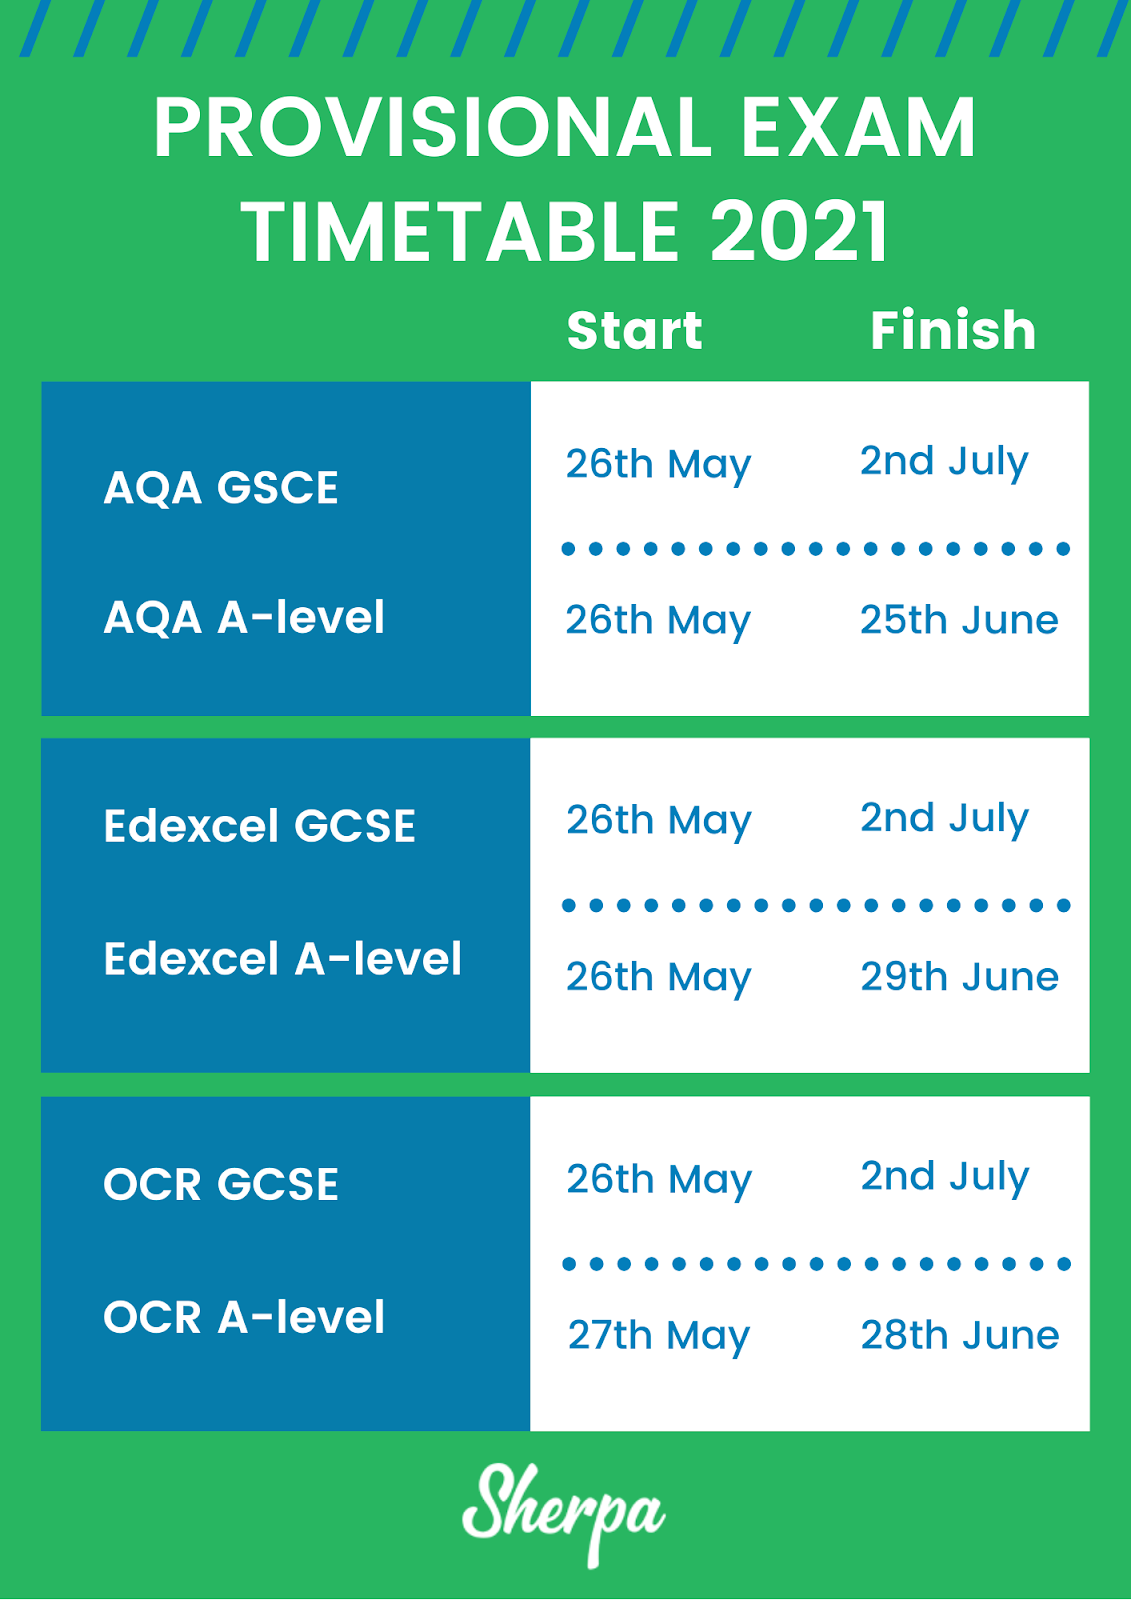 Provisional exam timetable for AQA, Edexcel and OCR